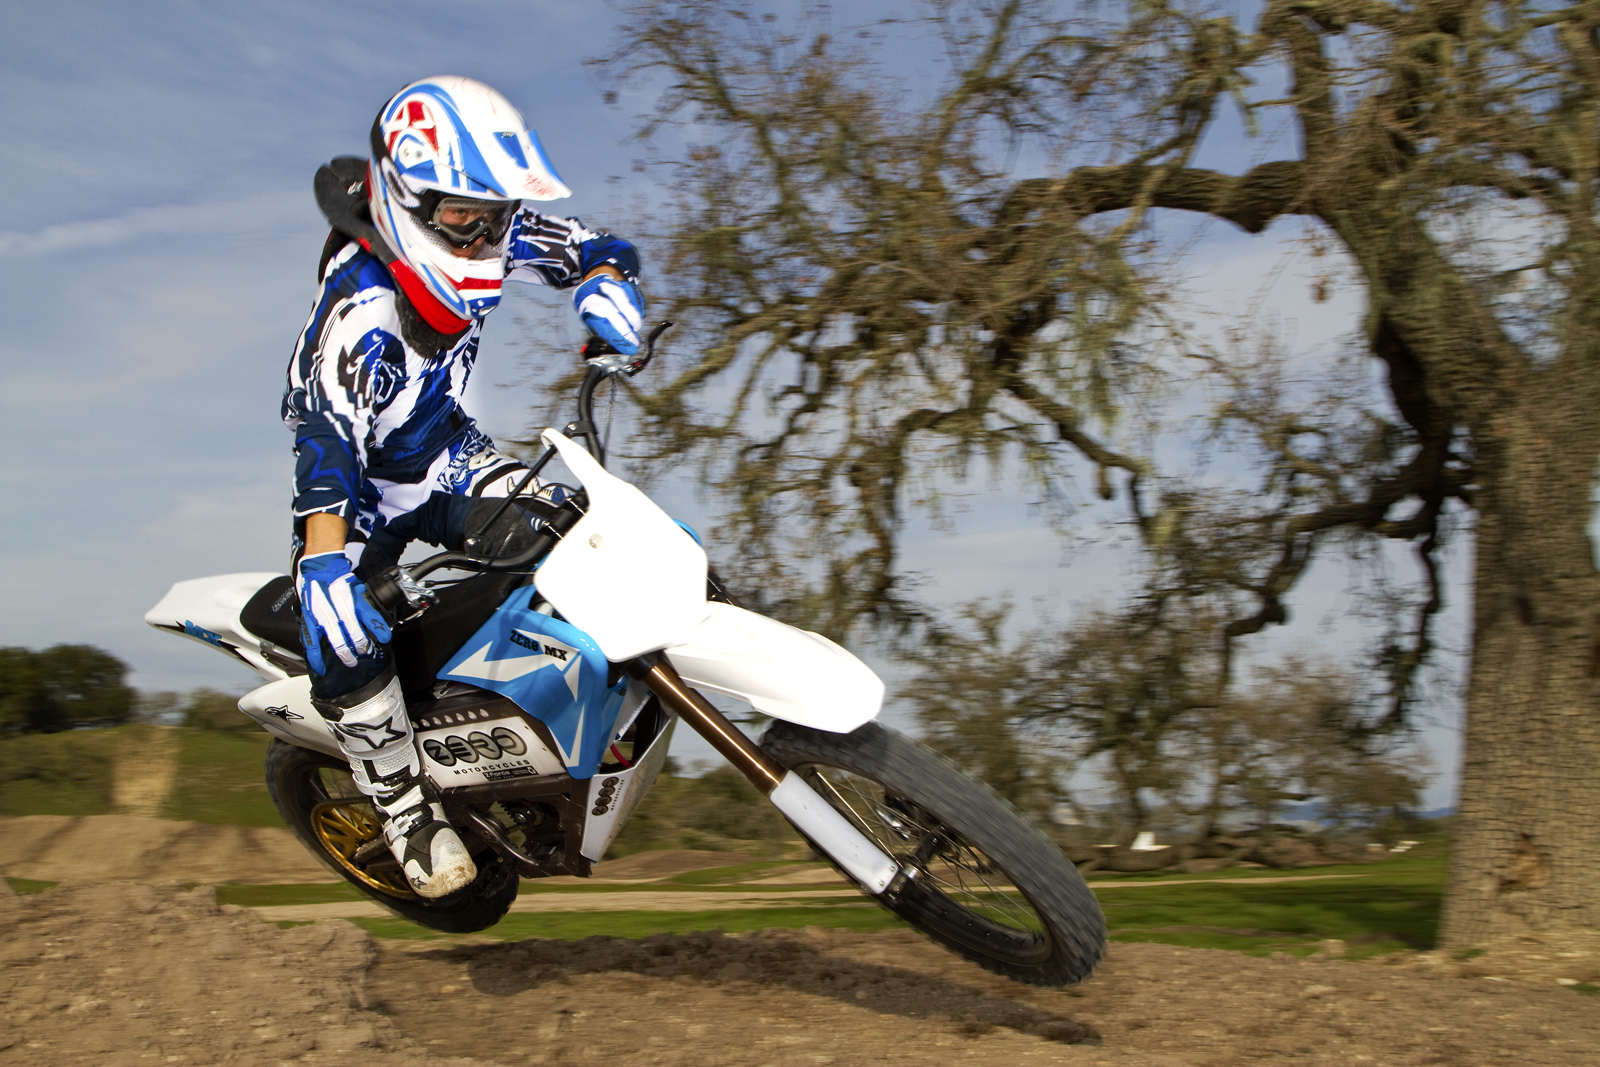 2010 Zero MX Electric Motorcycle: Zaca Station - Sideways Jump Inward